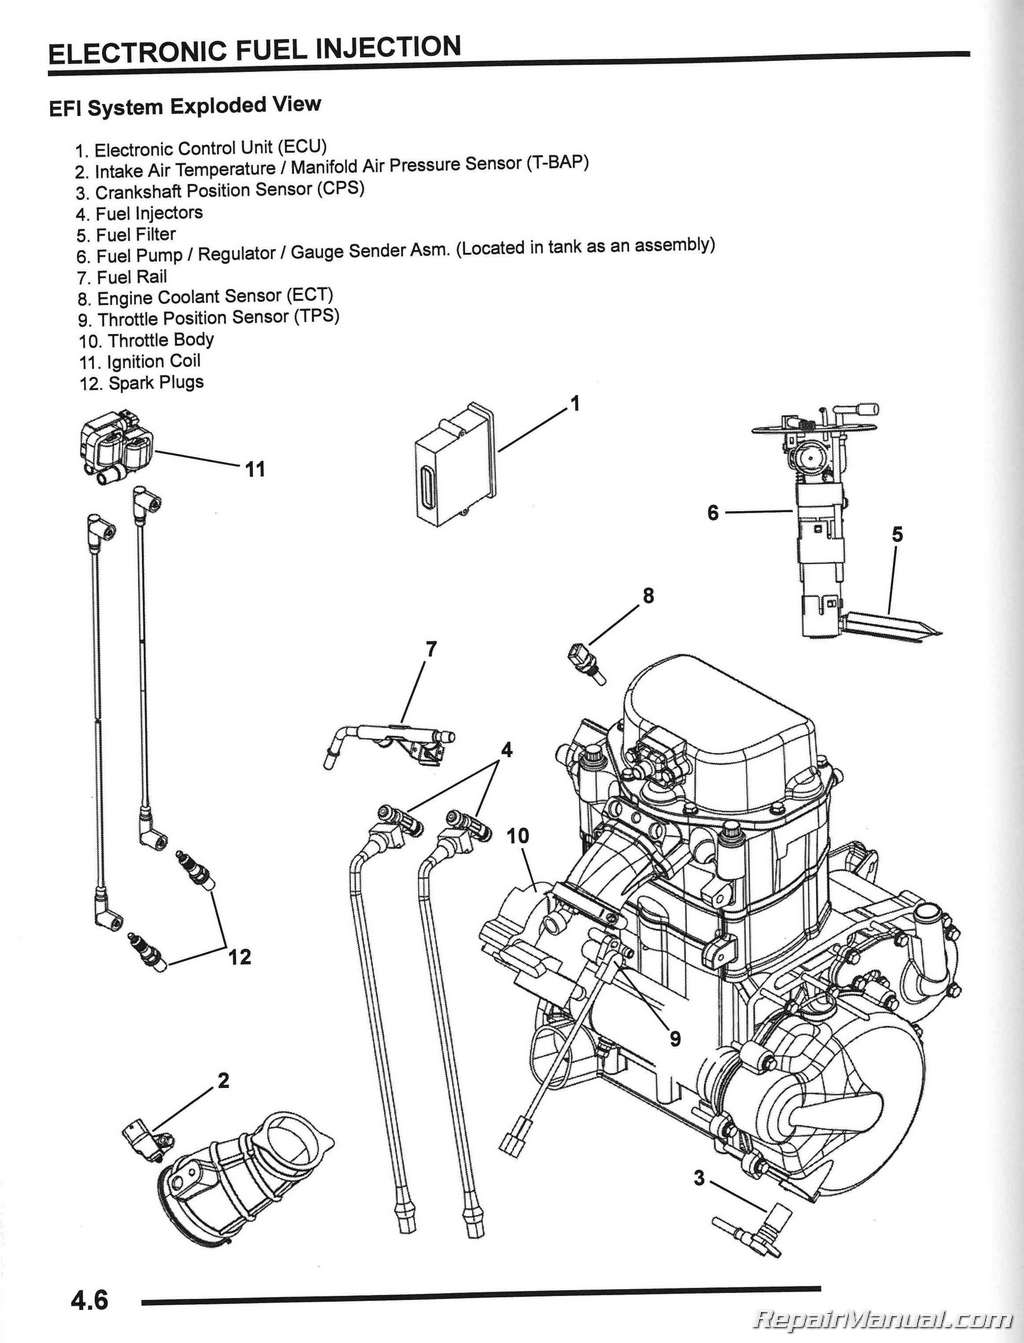 POLARIS SPORTSMAN 700 800 800 X2 EFI FULL SERVICE REPAIR MANUAL 2007  Auto Electrical    Wiring